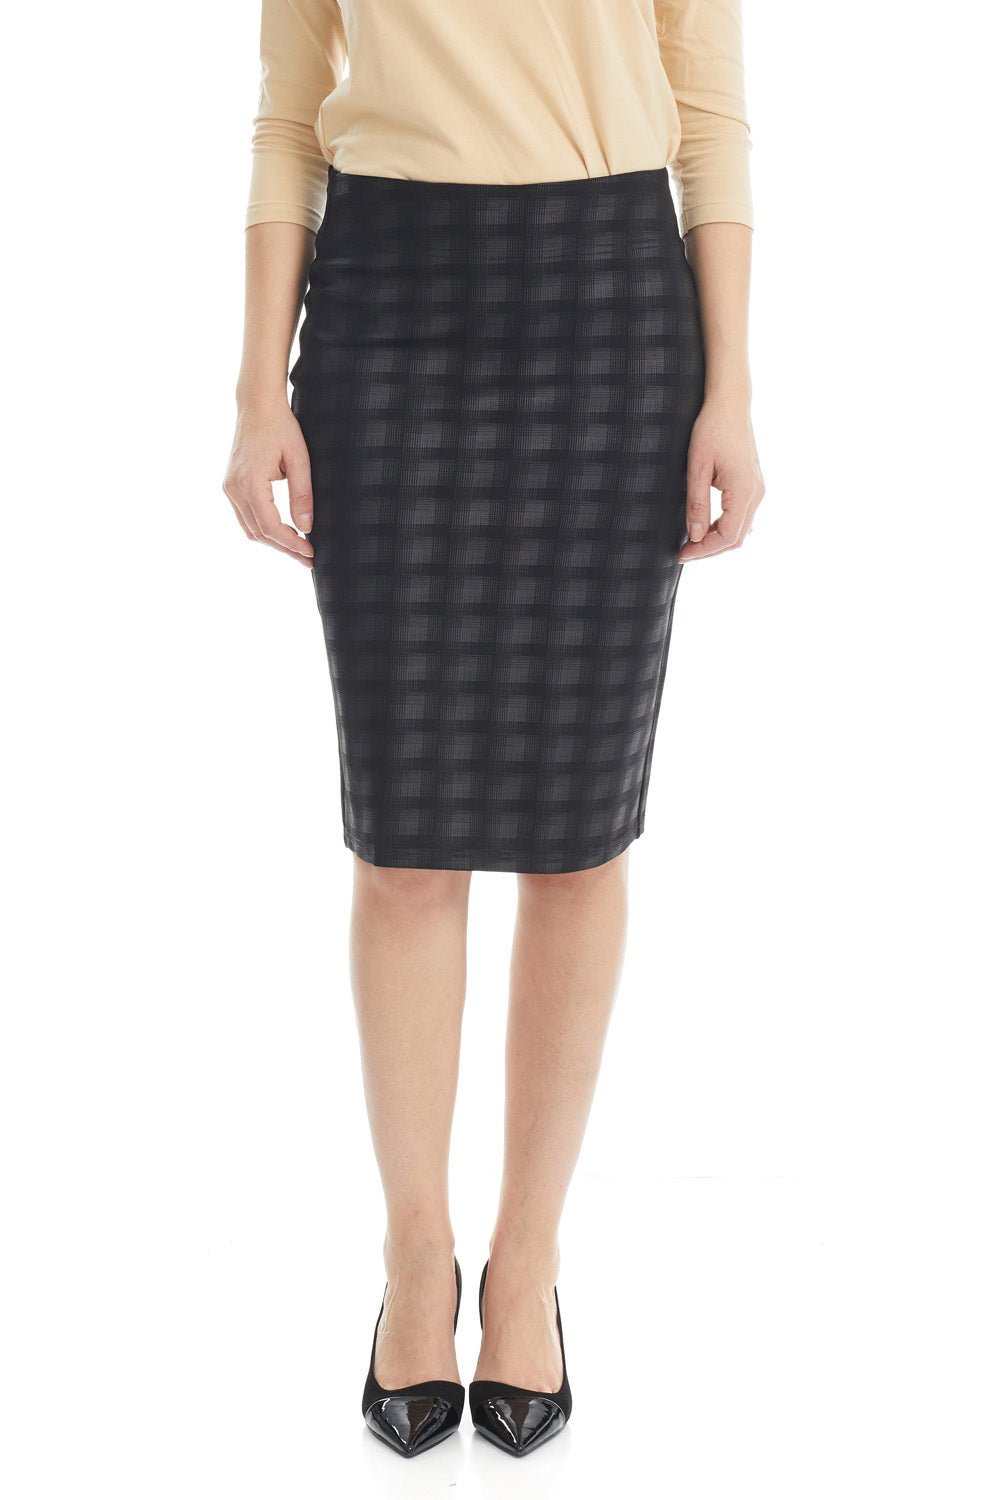 ESTEEZ SOPHIA Skirt - Straight Ponte Skirt for Women - BLACK PLAID